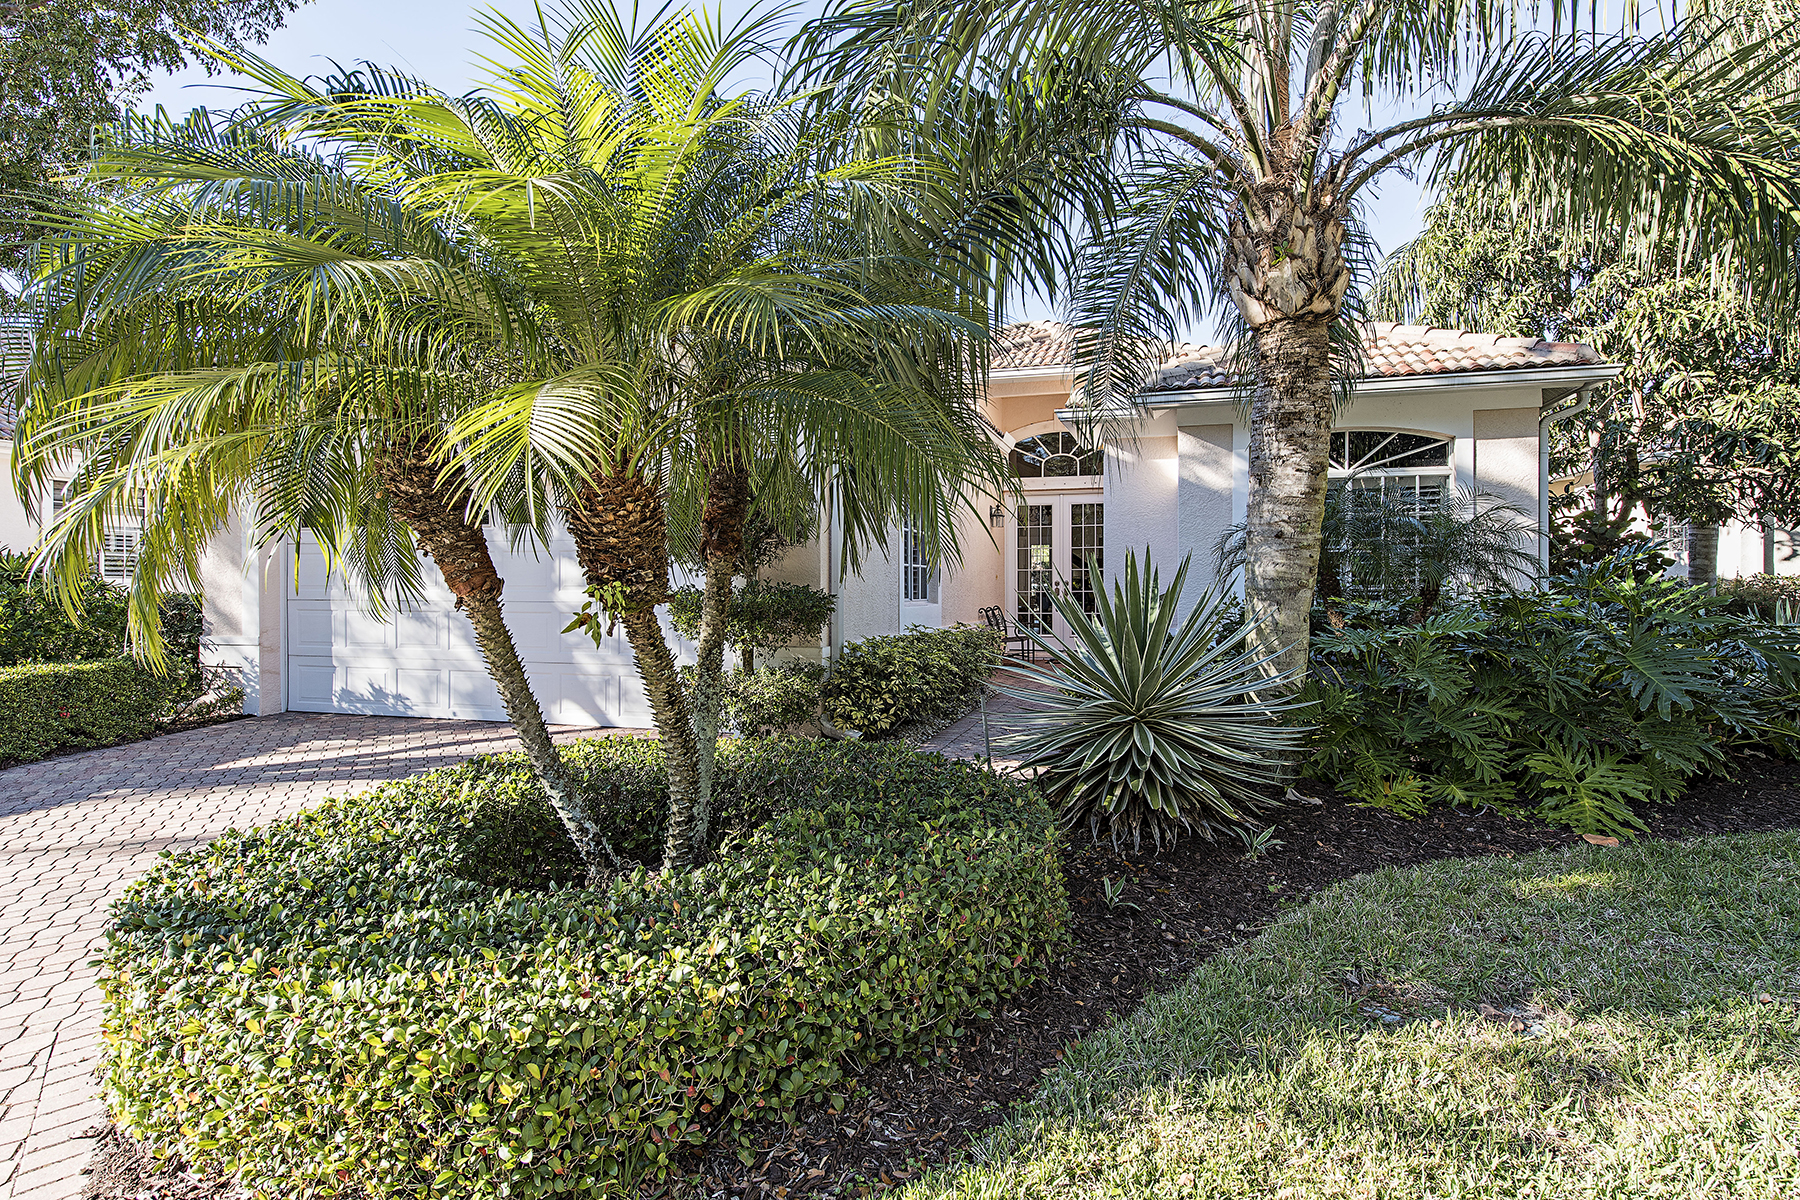 Single Family Home for Sale at Glen Eden 14692 Glen Eden Dr Naples, Florida, 34110 United States